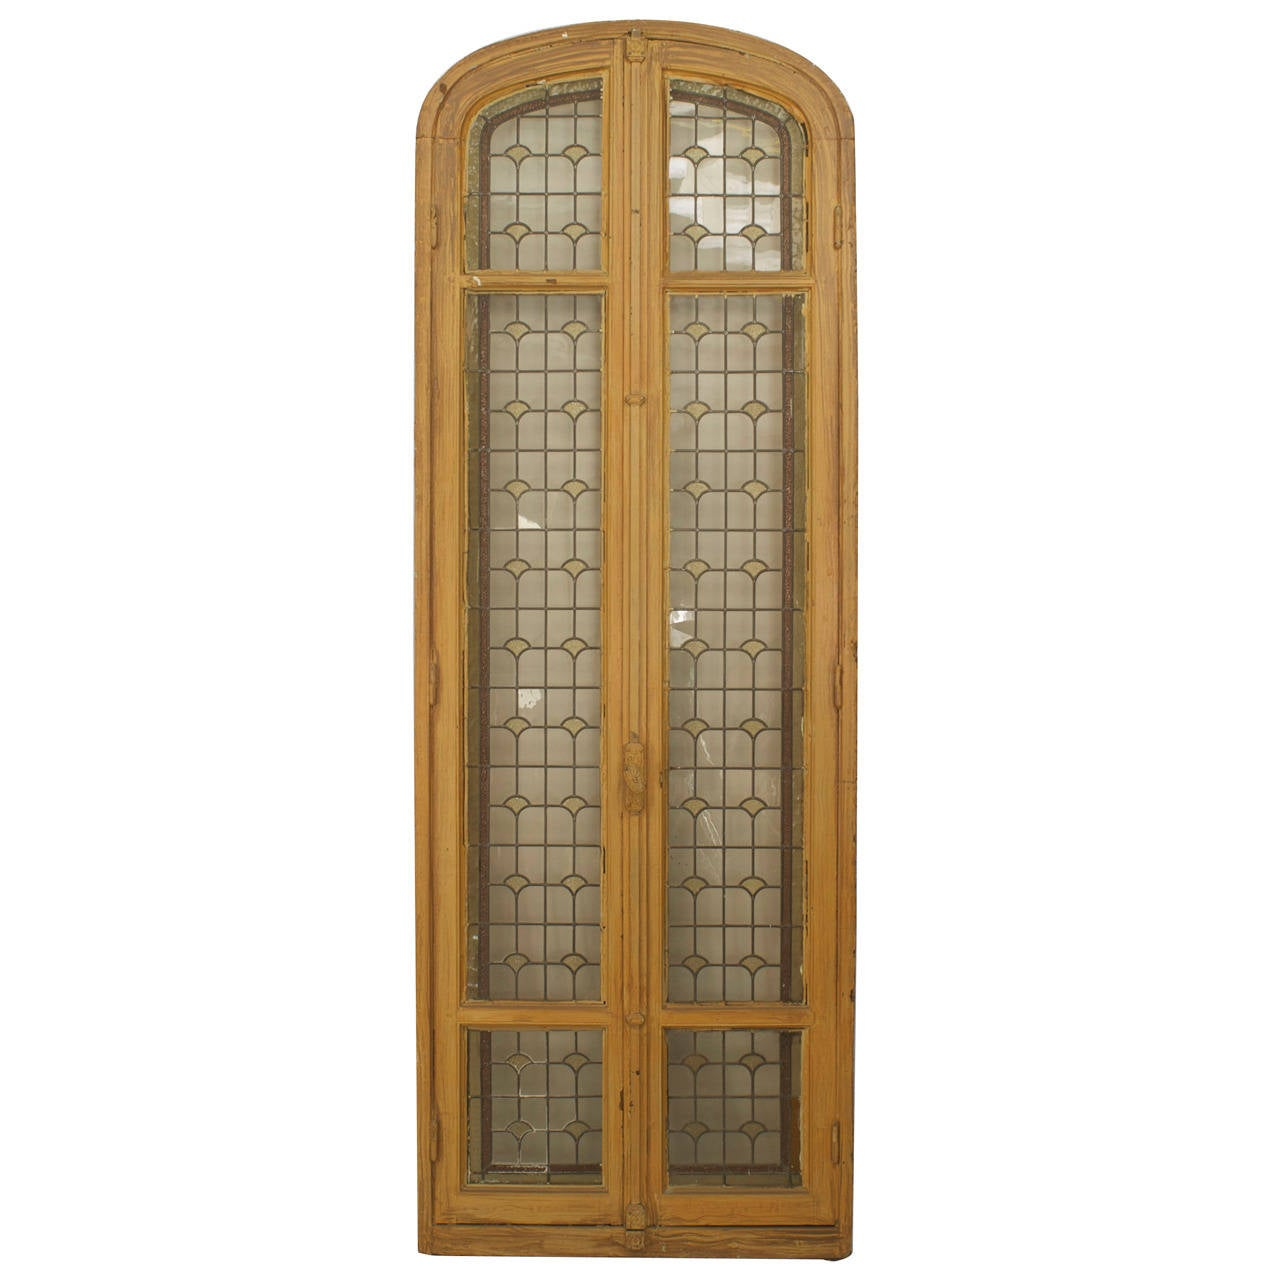 Three 19th C. French Stained Glass Doors